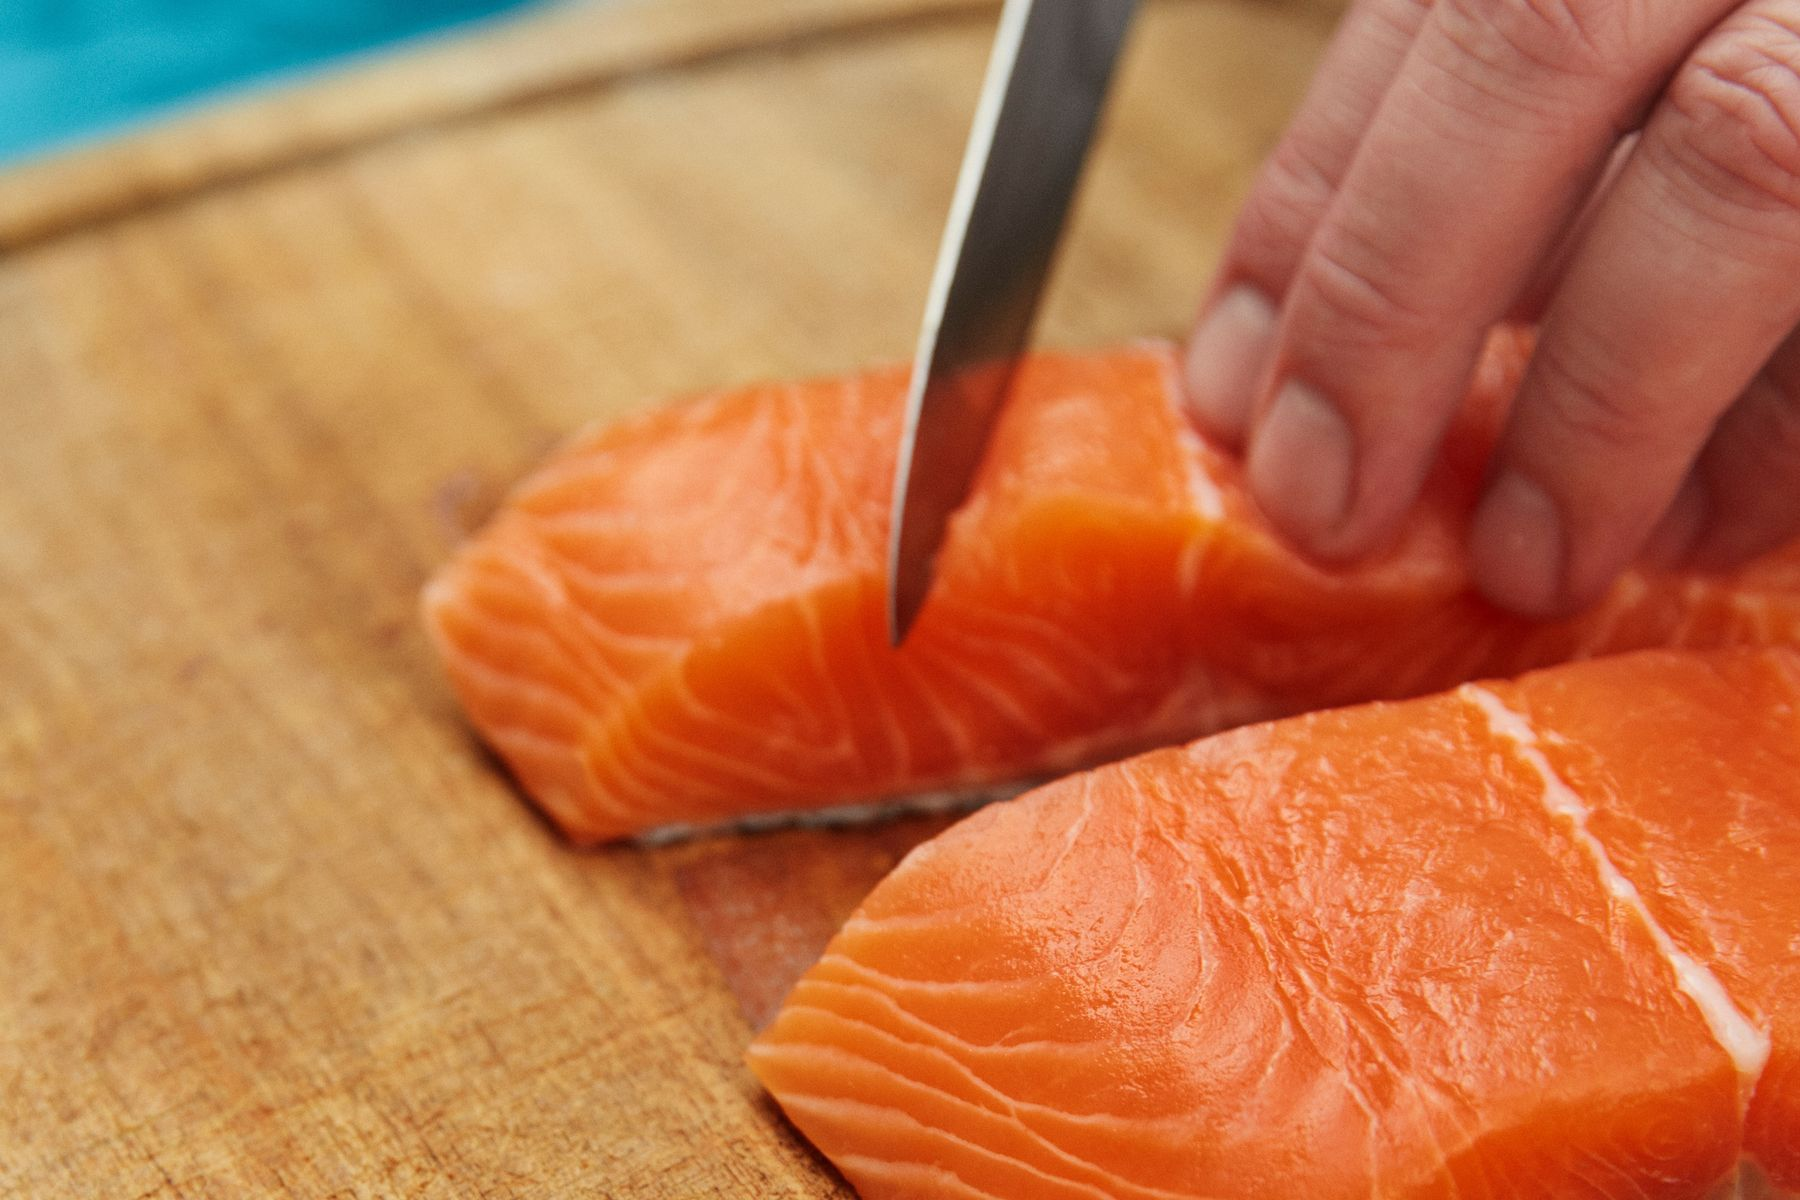 Close up of a hand and knife cutting salmon fillets after the right kitchen knife sharpening